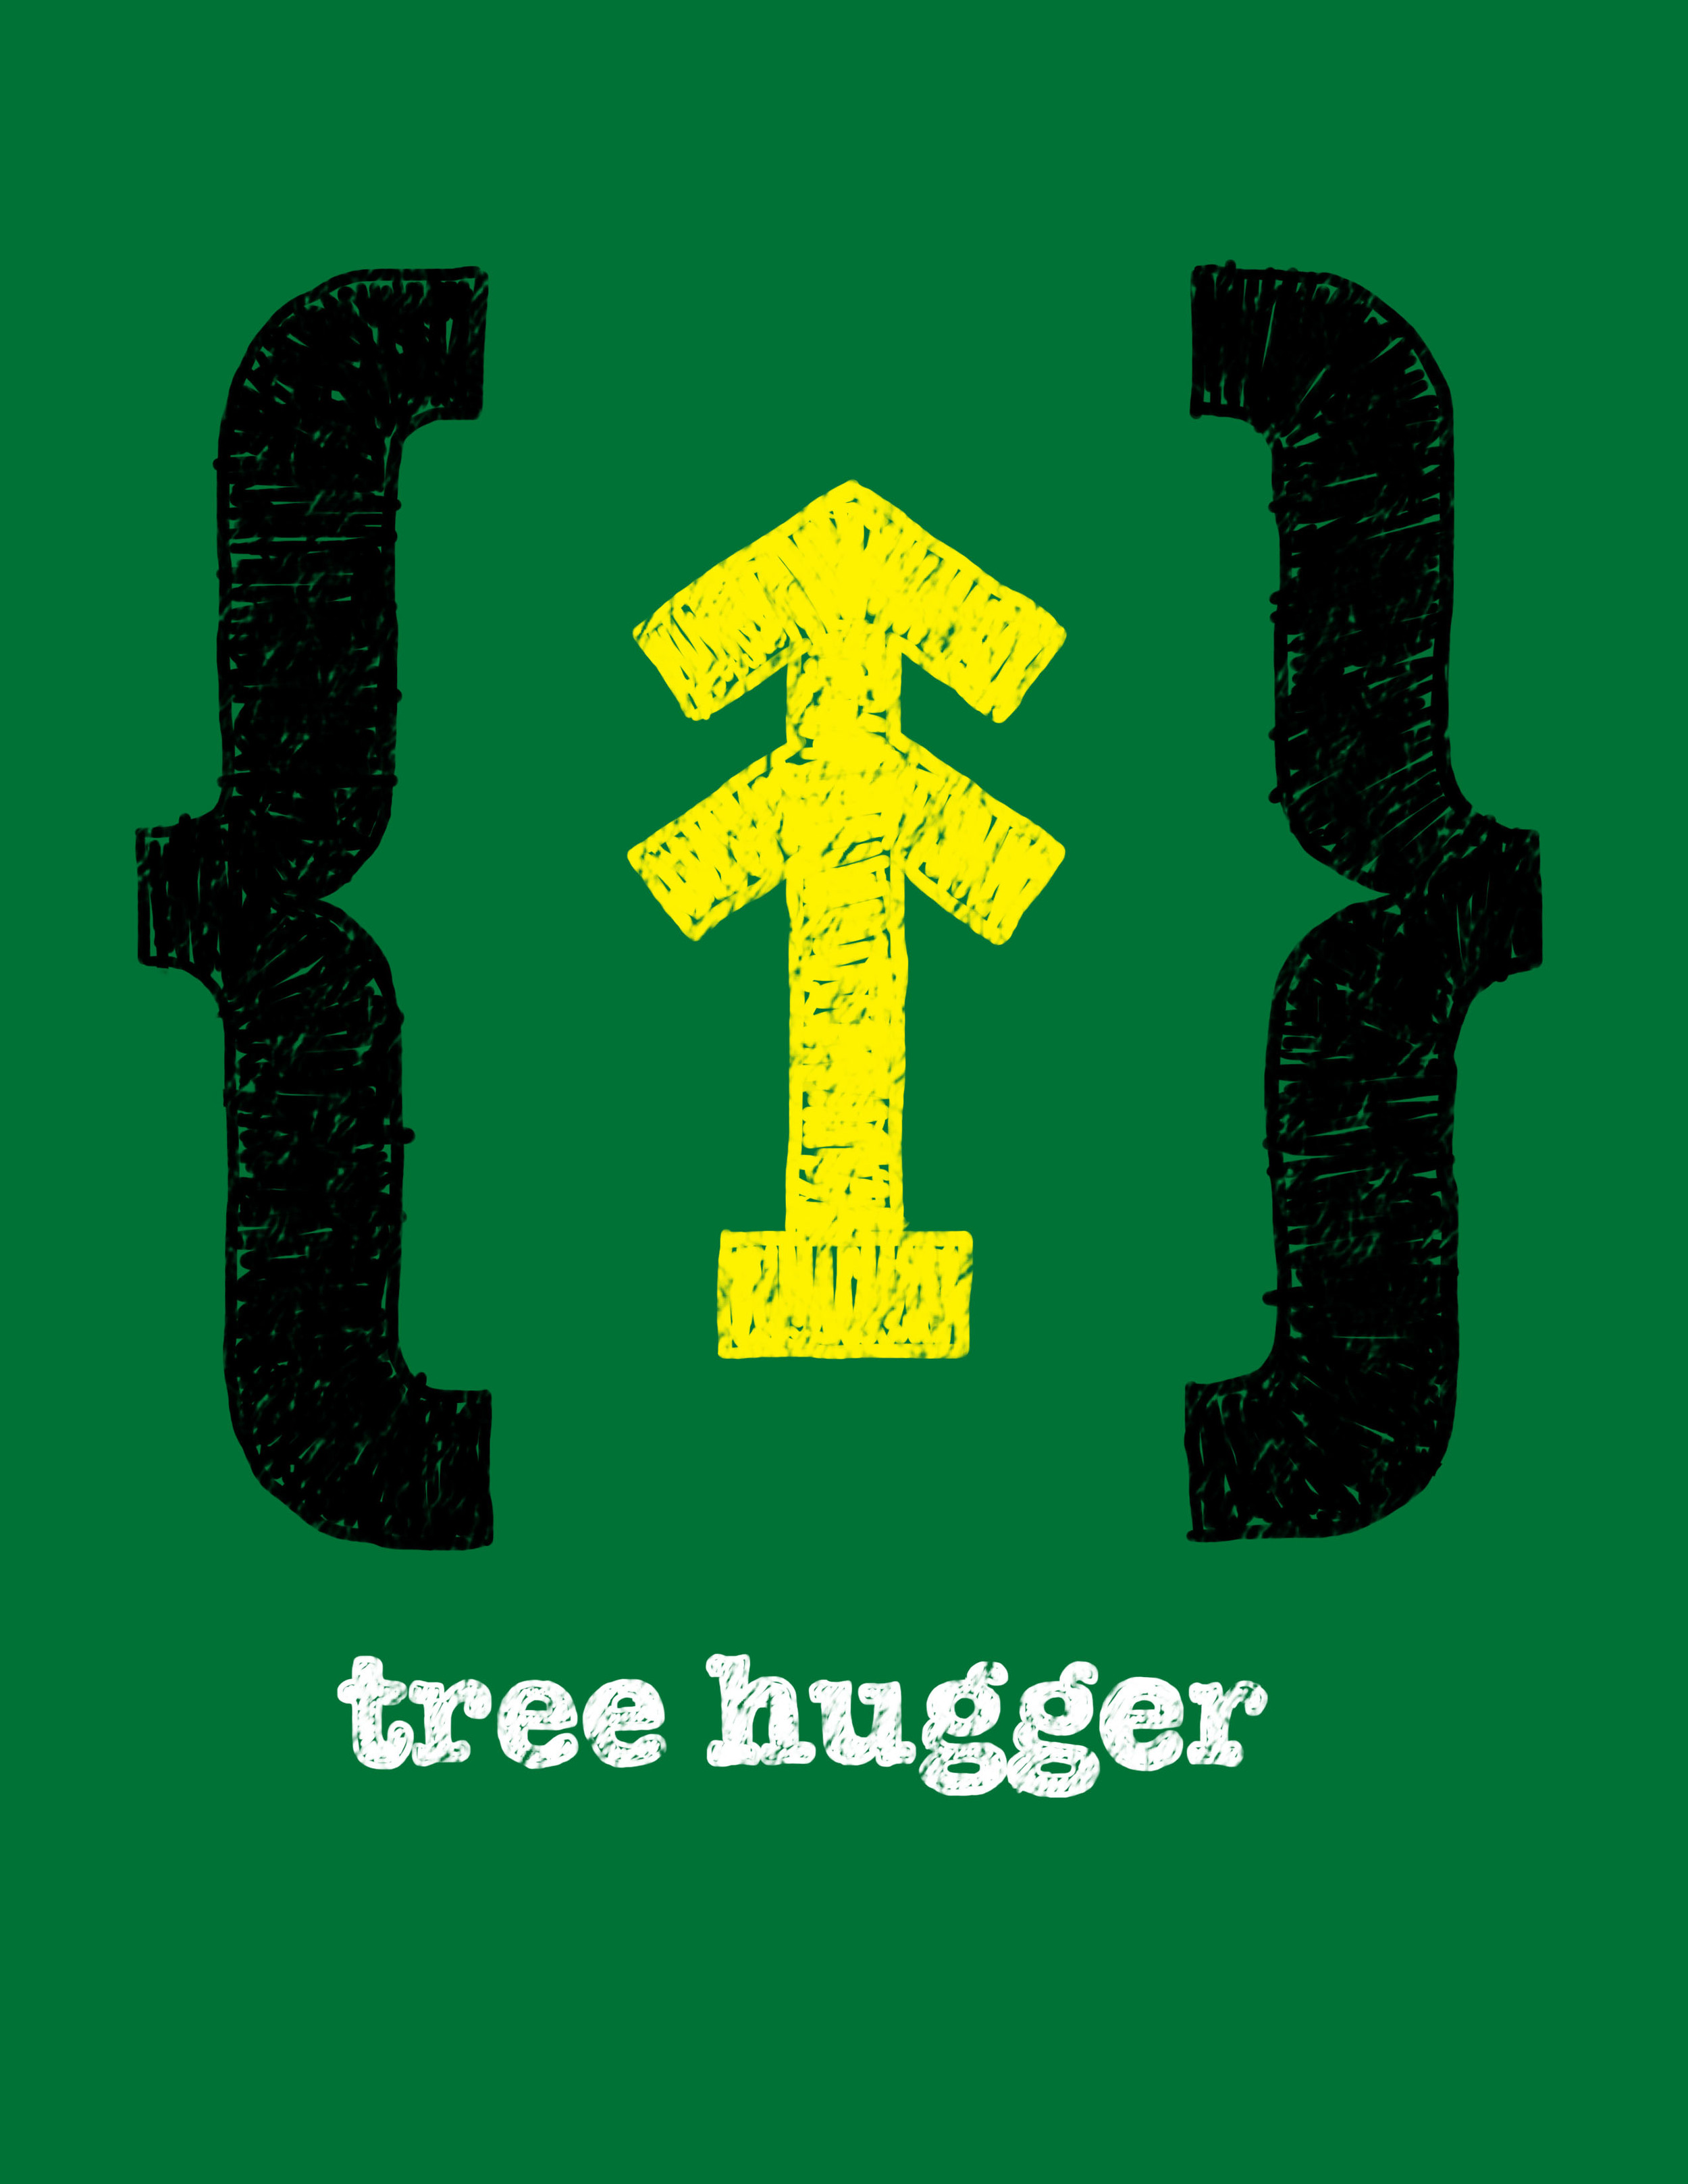 Treehugger | Images with Text